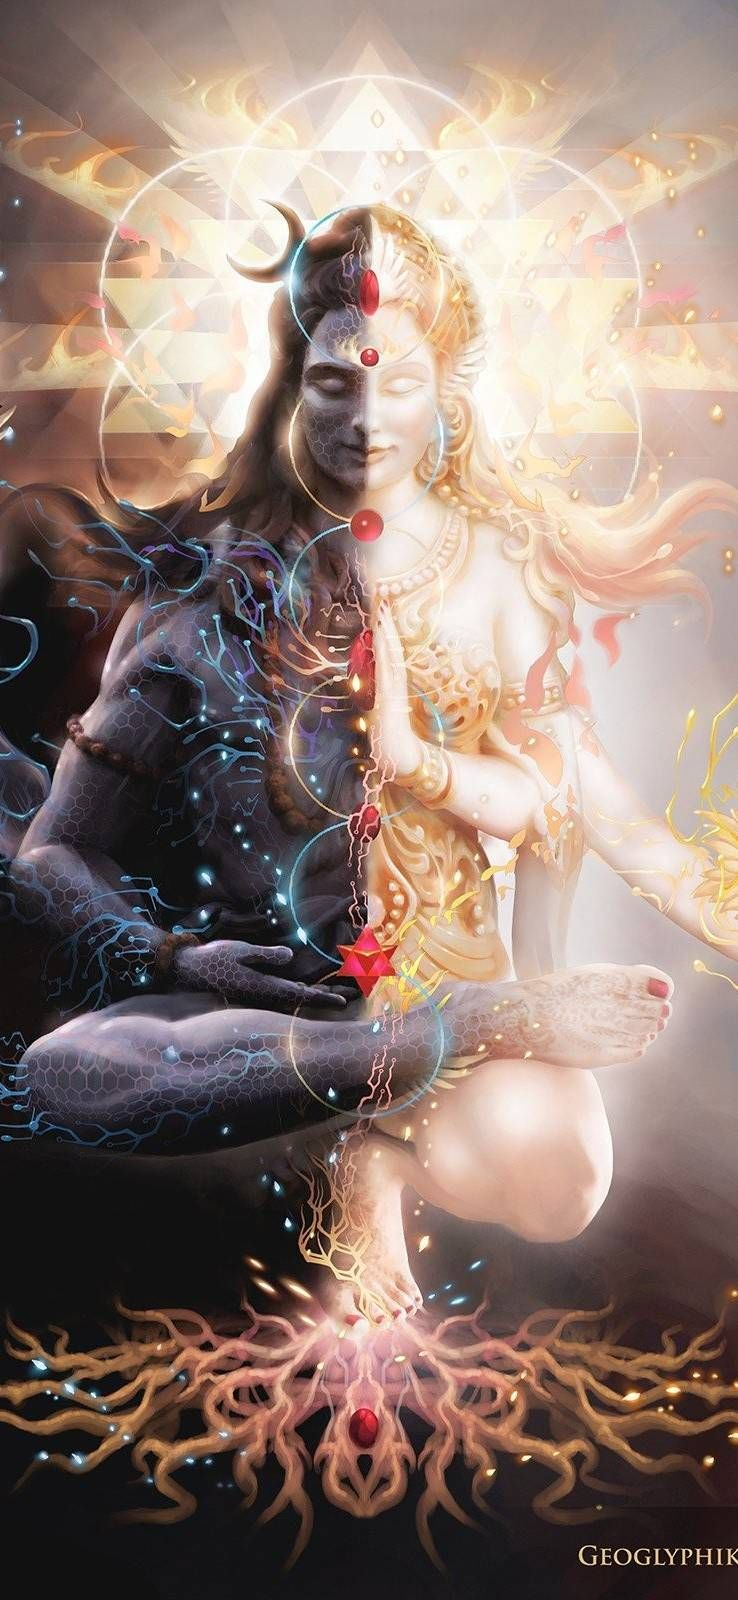 Most Unique And Ultra Hd Shiva Wallpapers Hindu God Mahadev Full Hd Wallpaper For Mobile Screen Mahak Shiva Angry Shiva Lord Wallpapers Lord Vishnu Wallpapers 3d animation ultra hd 1080p shiva hd